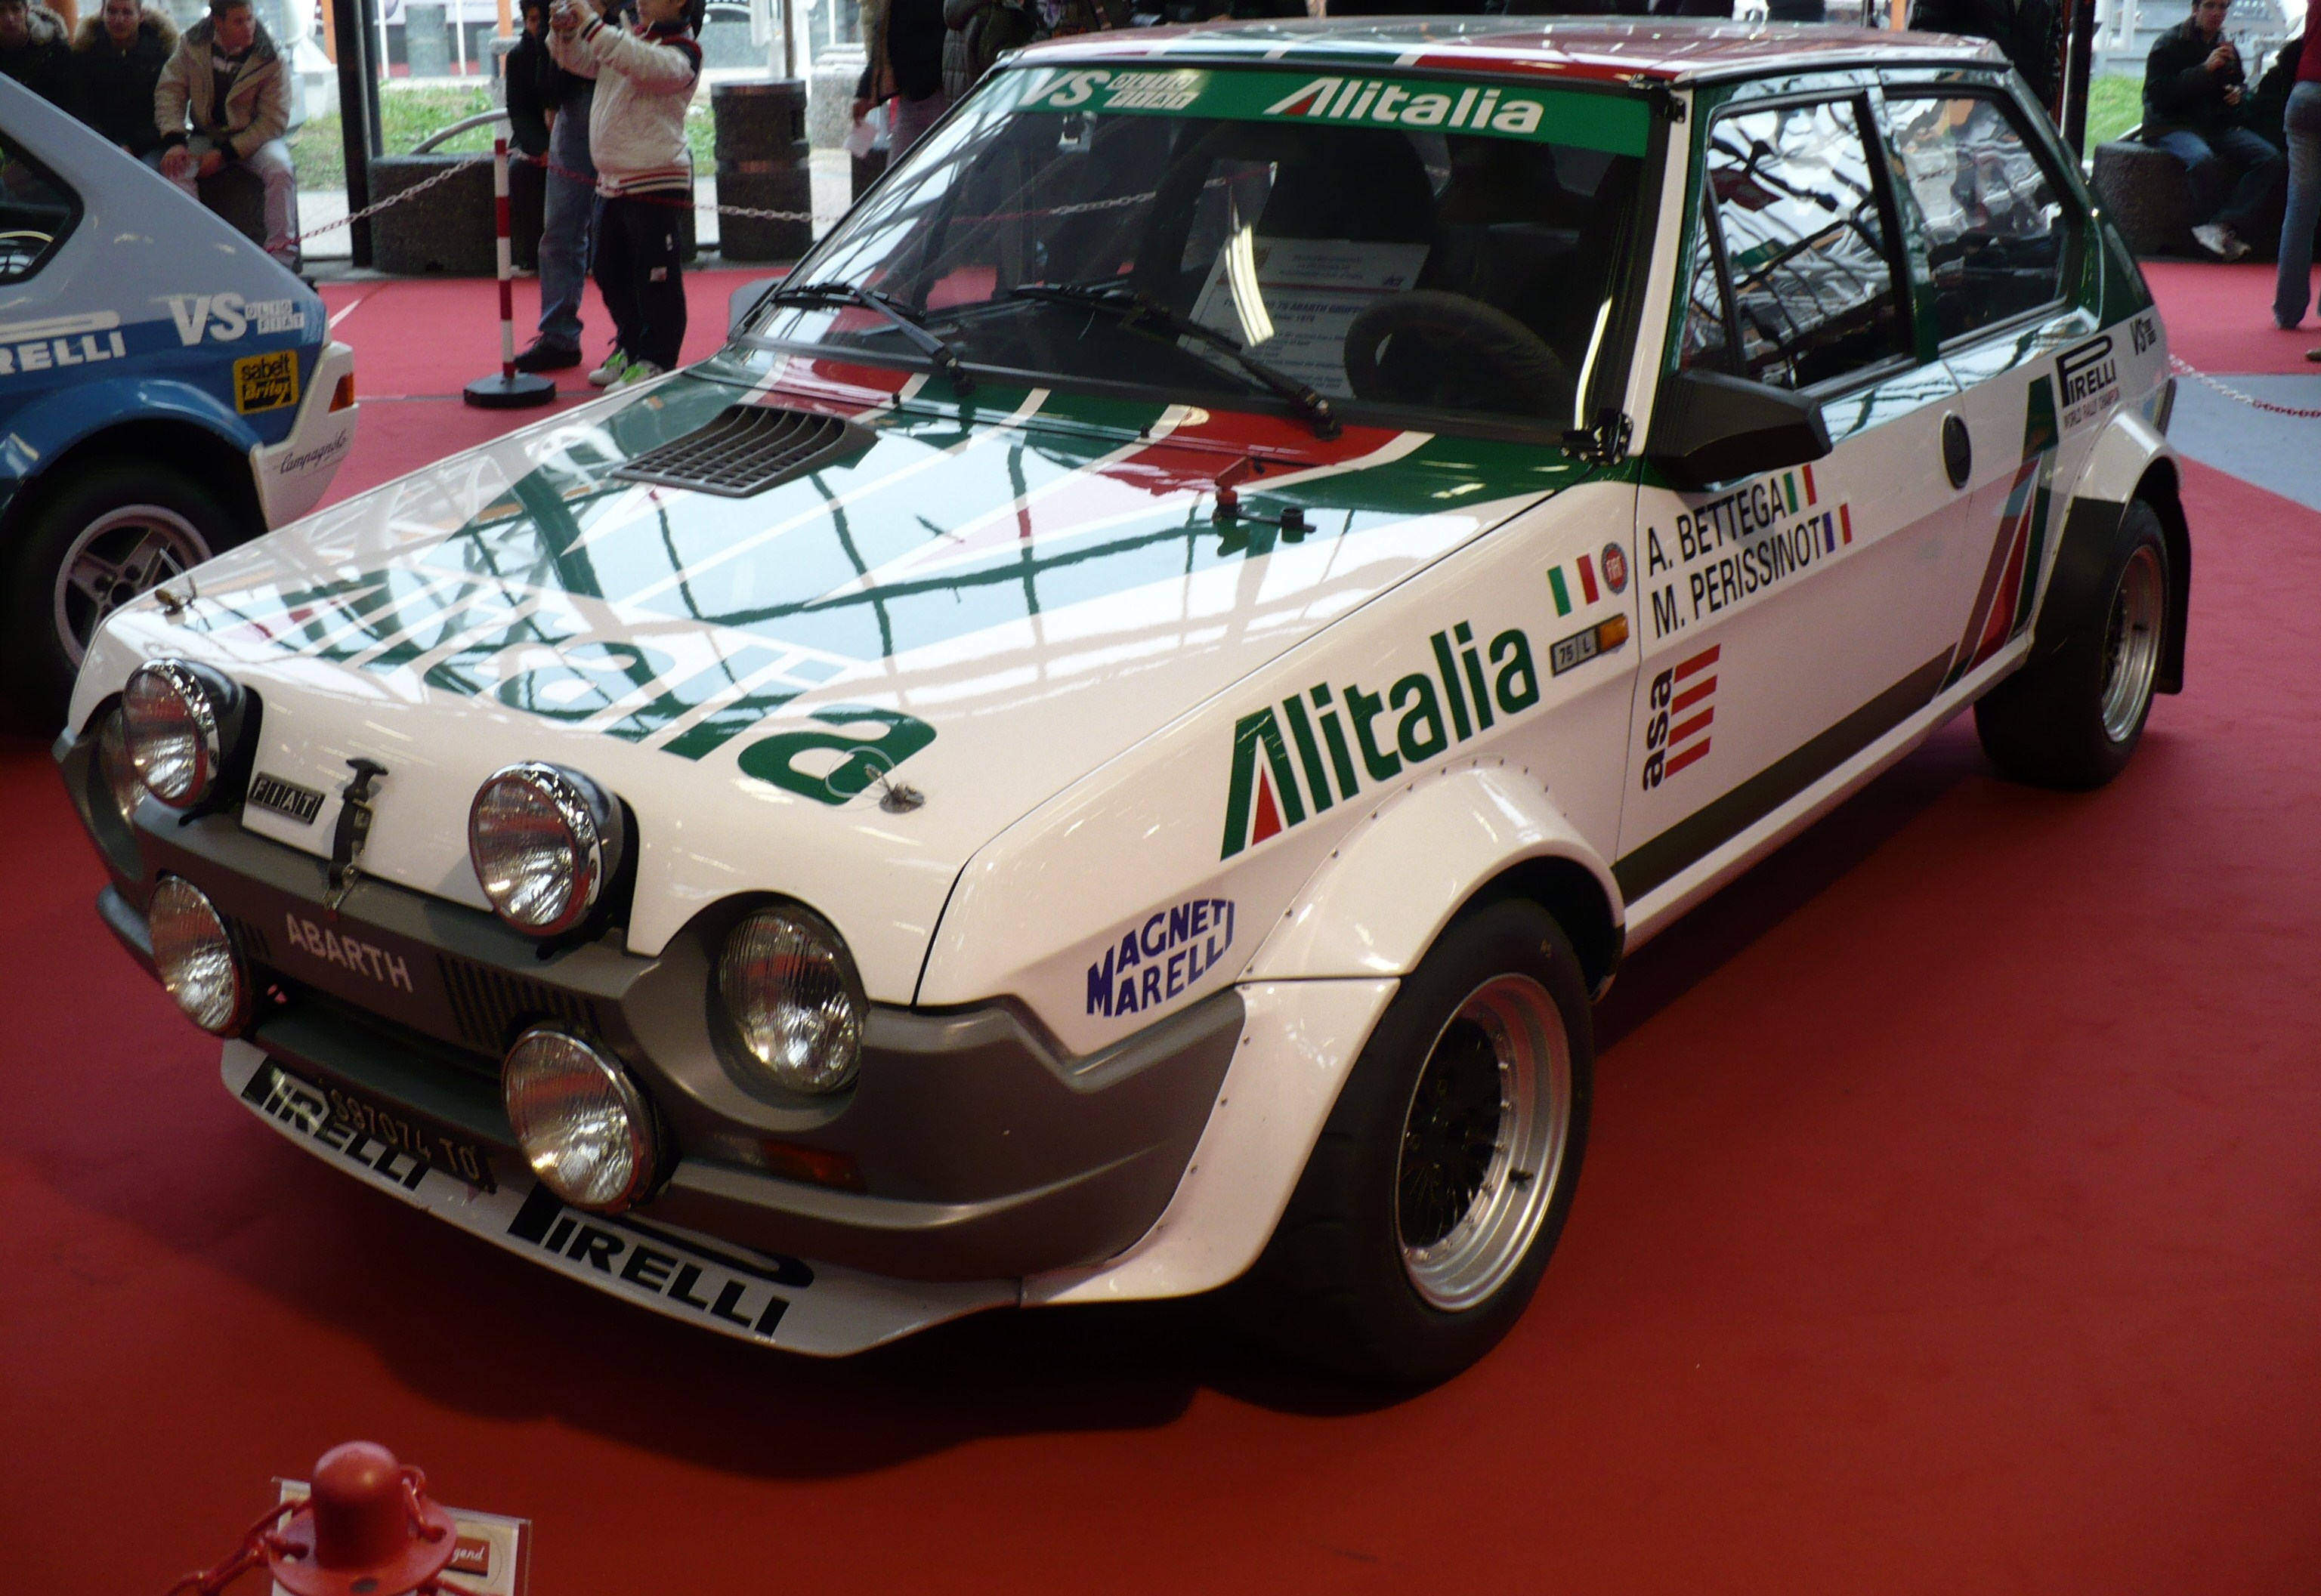 Fiat Ritmo Abarth Rally By Davi80 On Deviantart